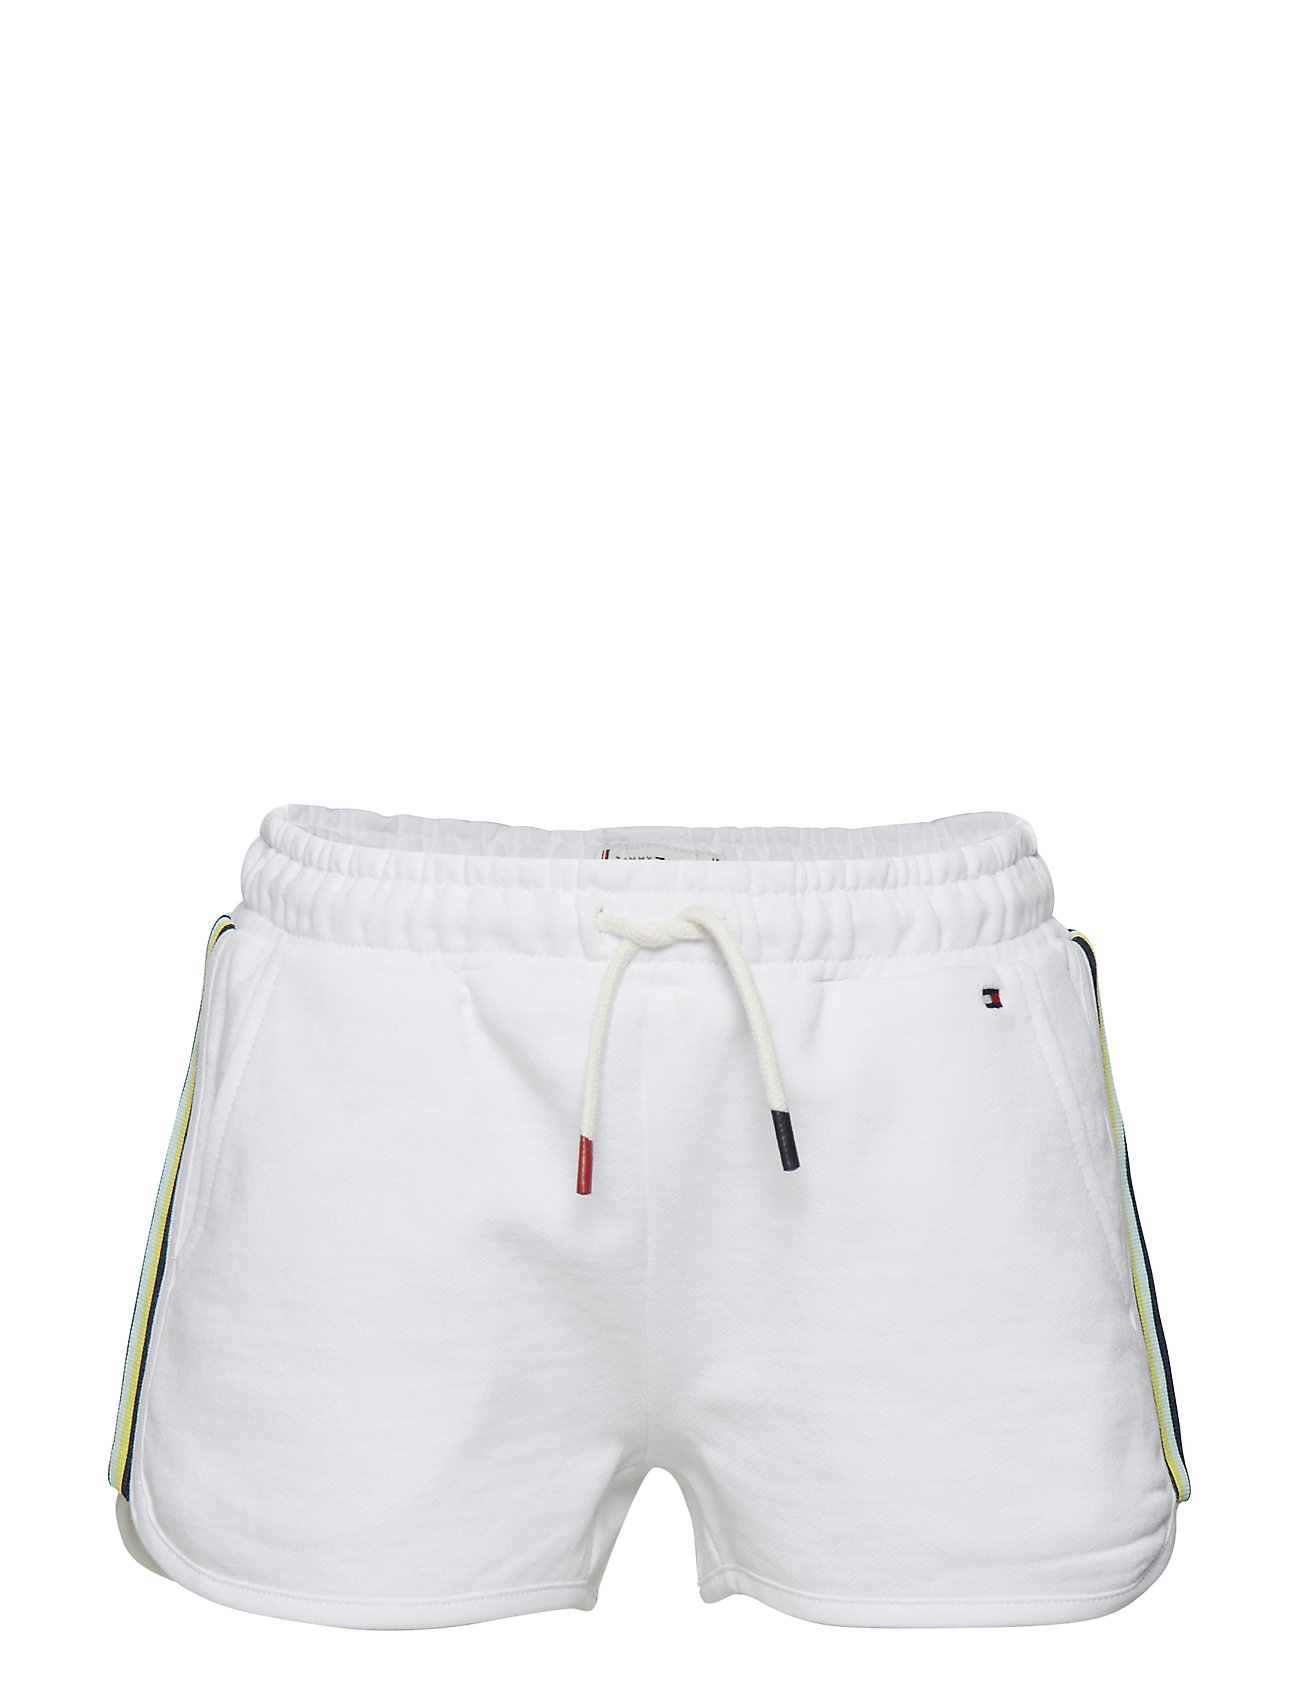 Tommy Hilfiger KNITTED TAPE SPORTS SHORTS - BRIGHT WHITE